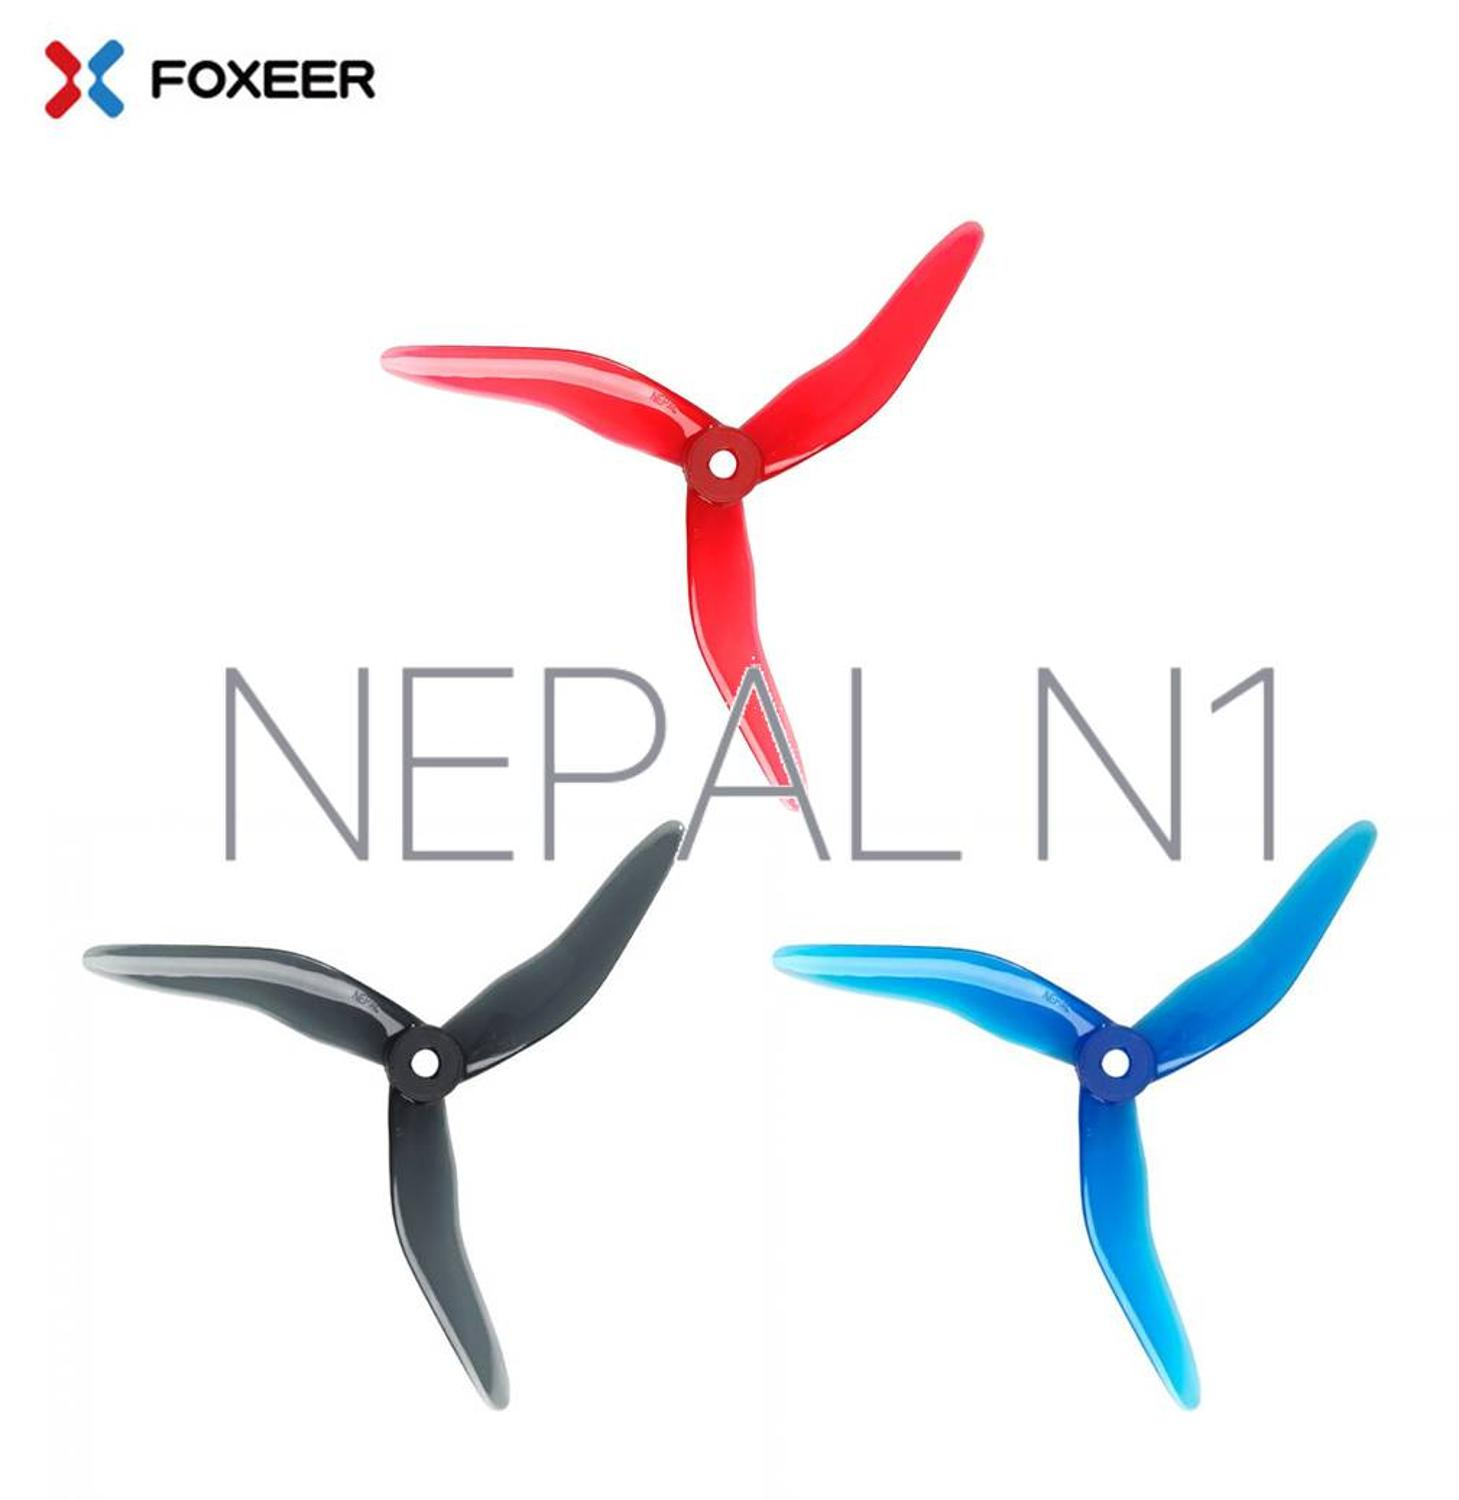 4pcs/2pairs DALPROP NEPAL N1 Propeller Freestyle Sweepback Prop No Prop Wash Brushless Motor For FPV Racing Drone